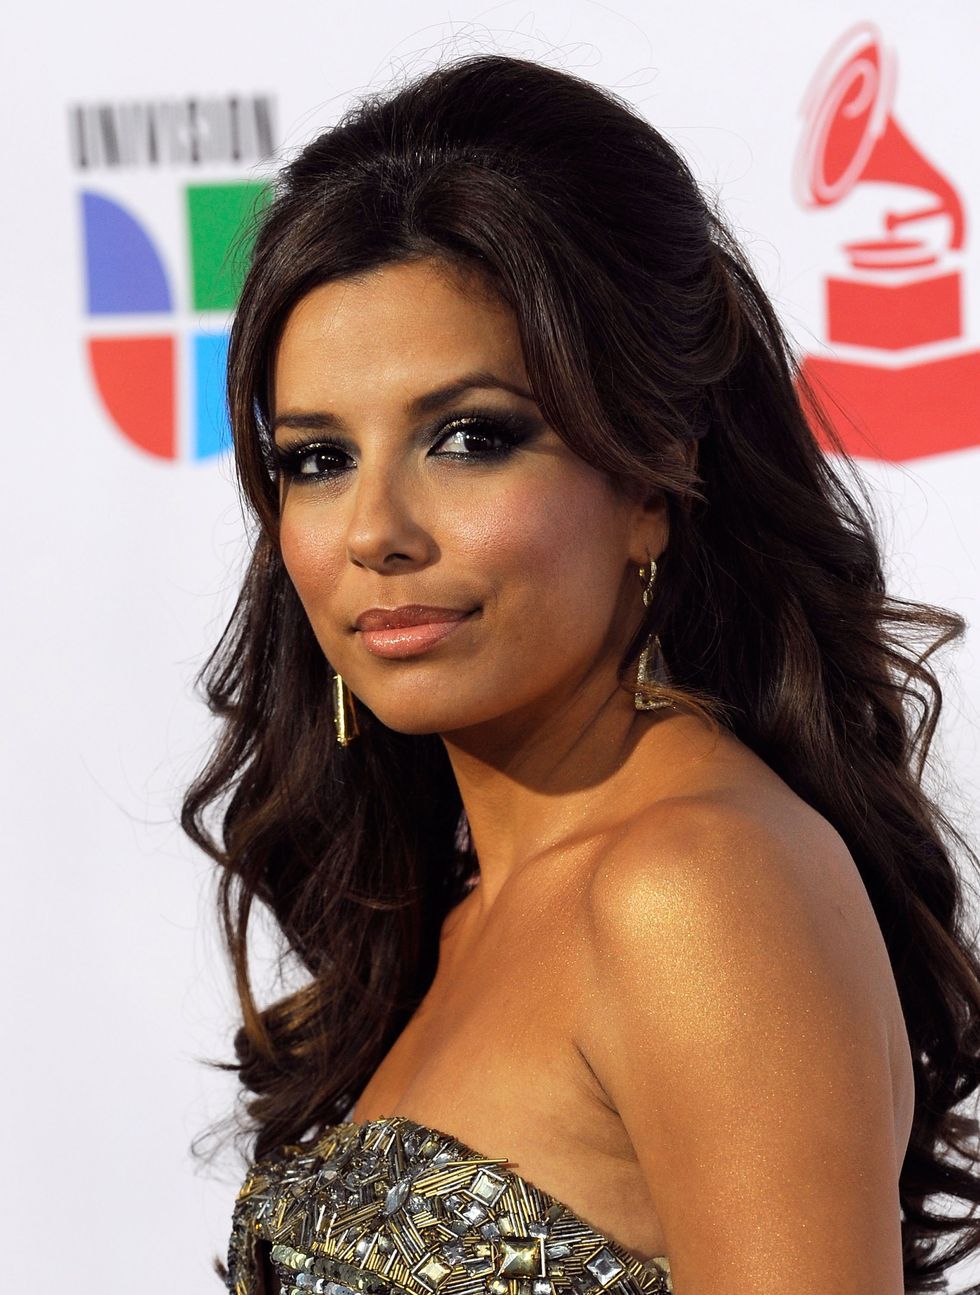 eva-longoria-10th-annual-latin-grammy-awards-01